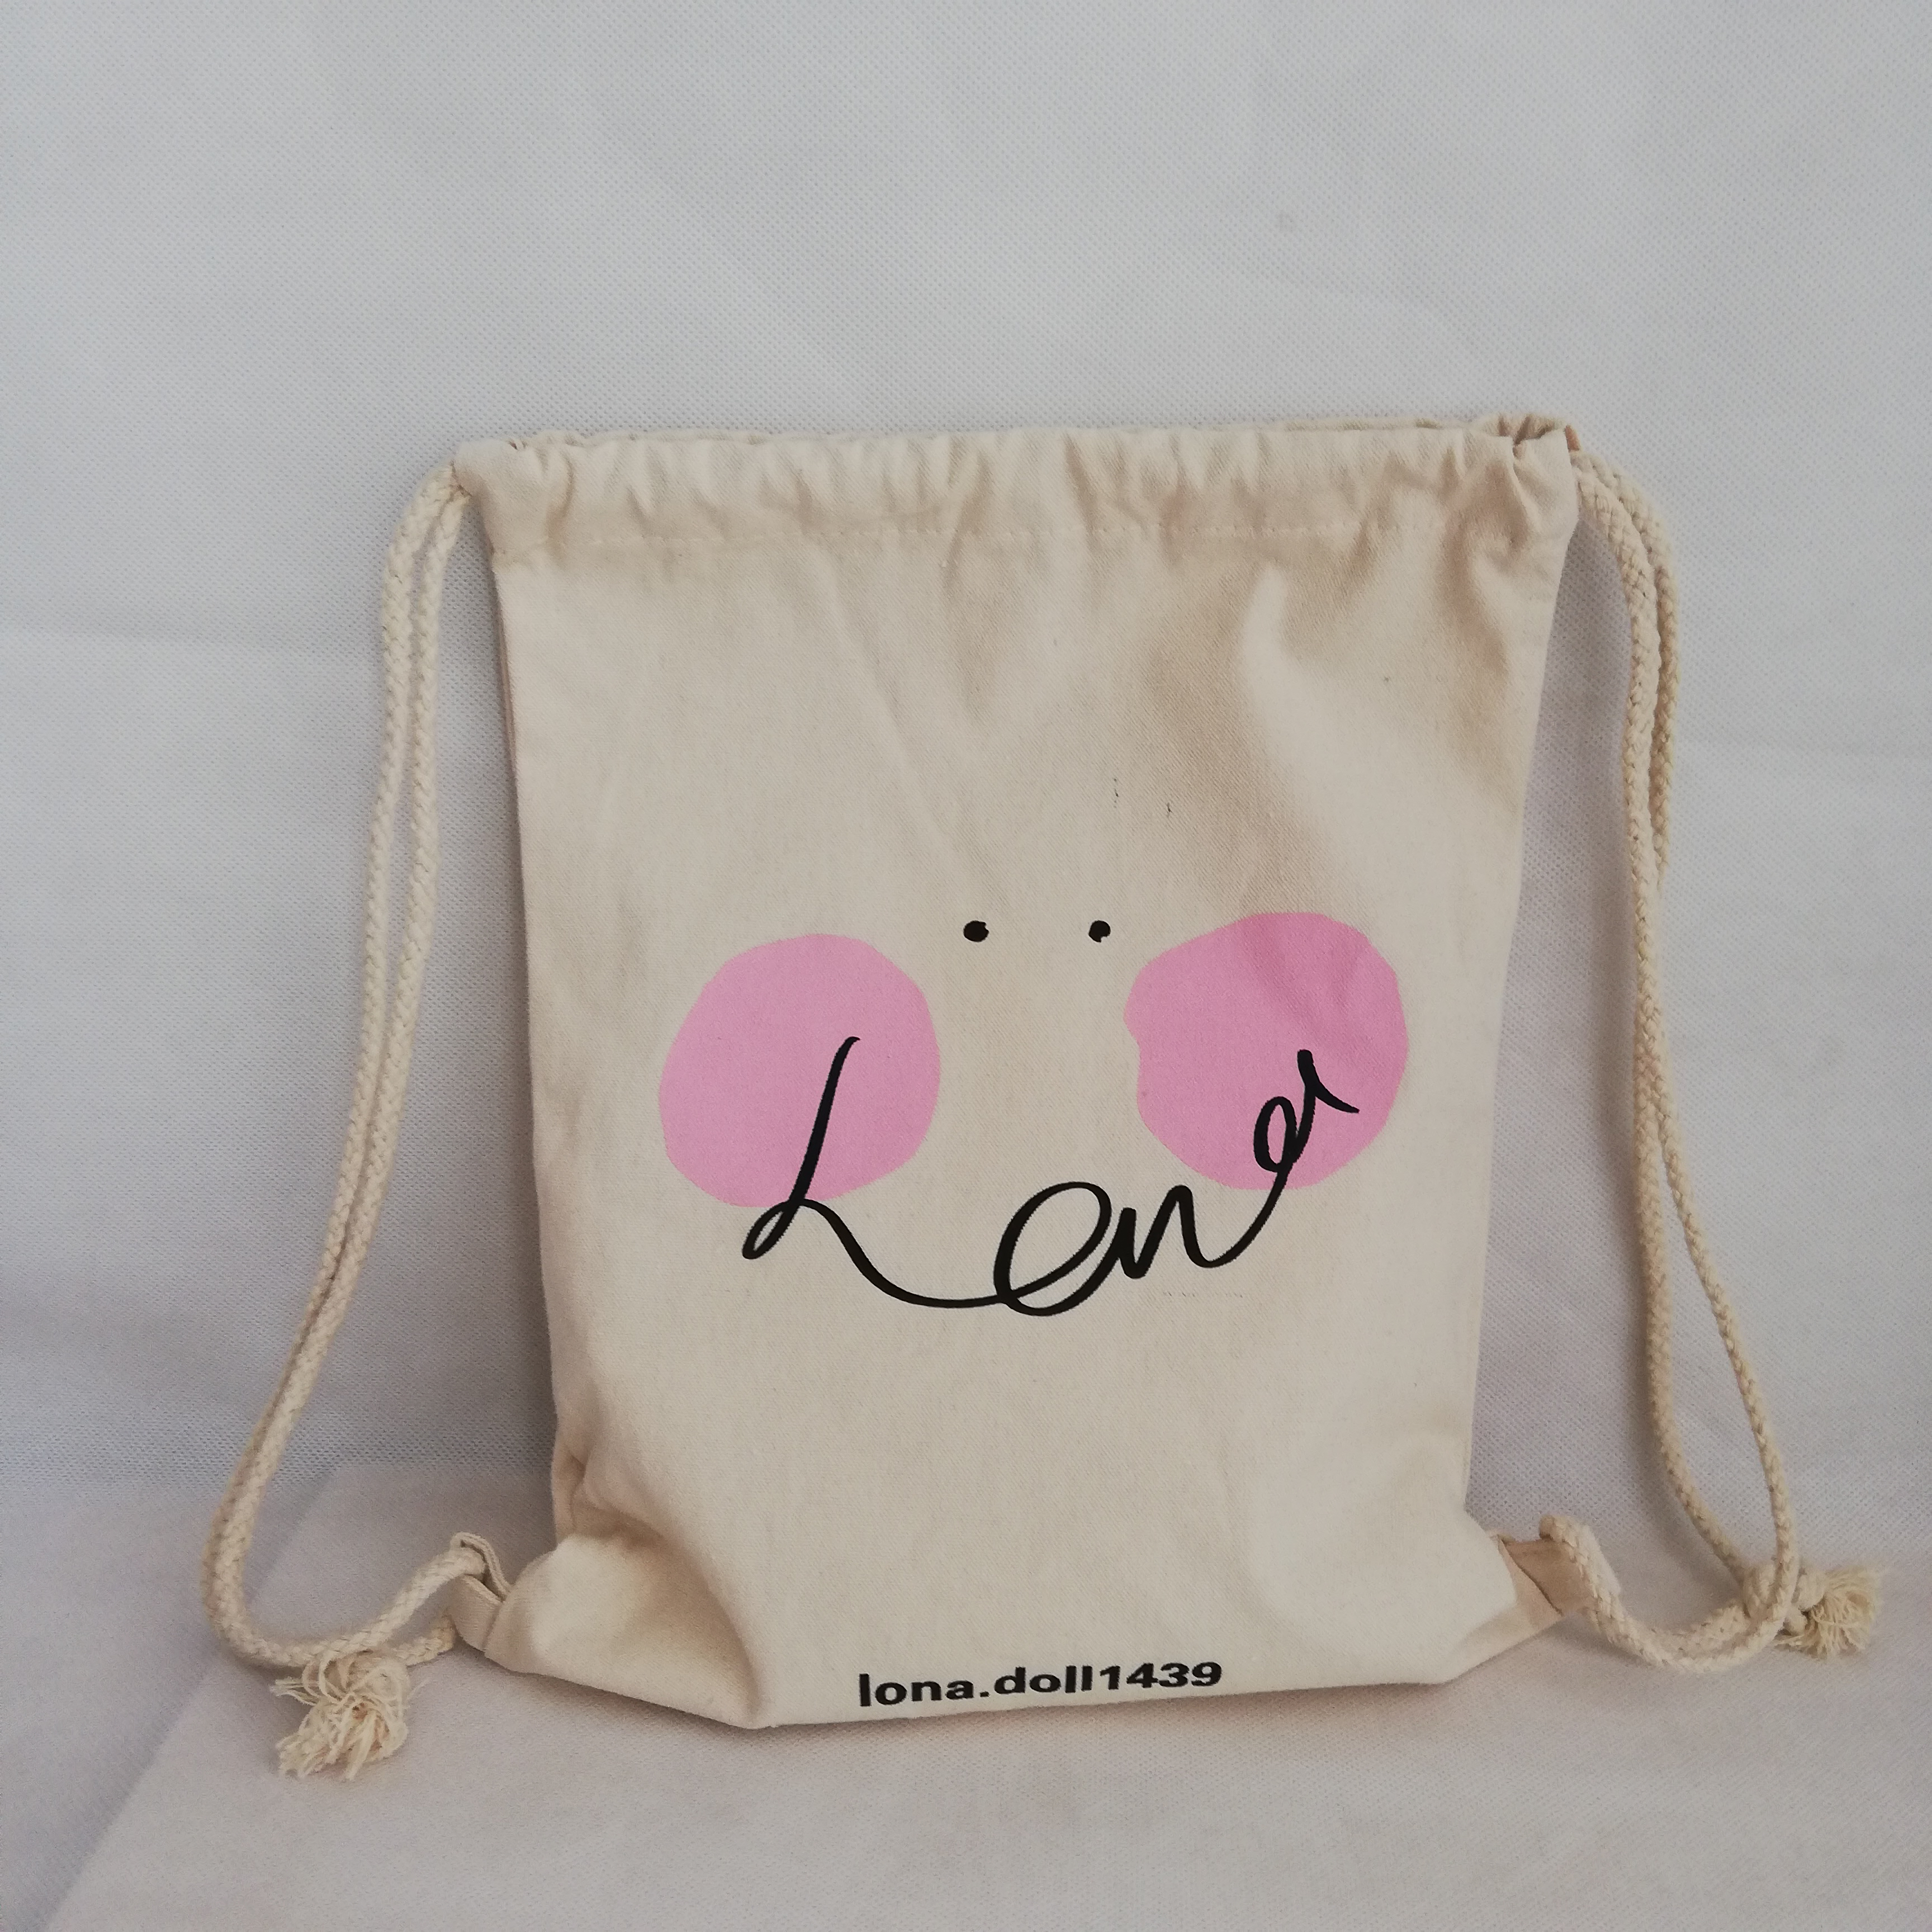 500pcs lot Custom Cotton Drawstring Bags with Your Logo String Backpack For Girls and Children School